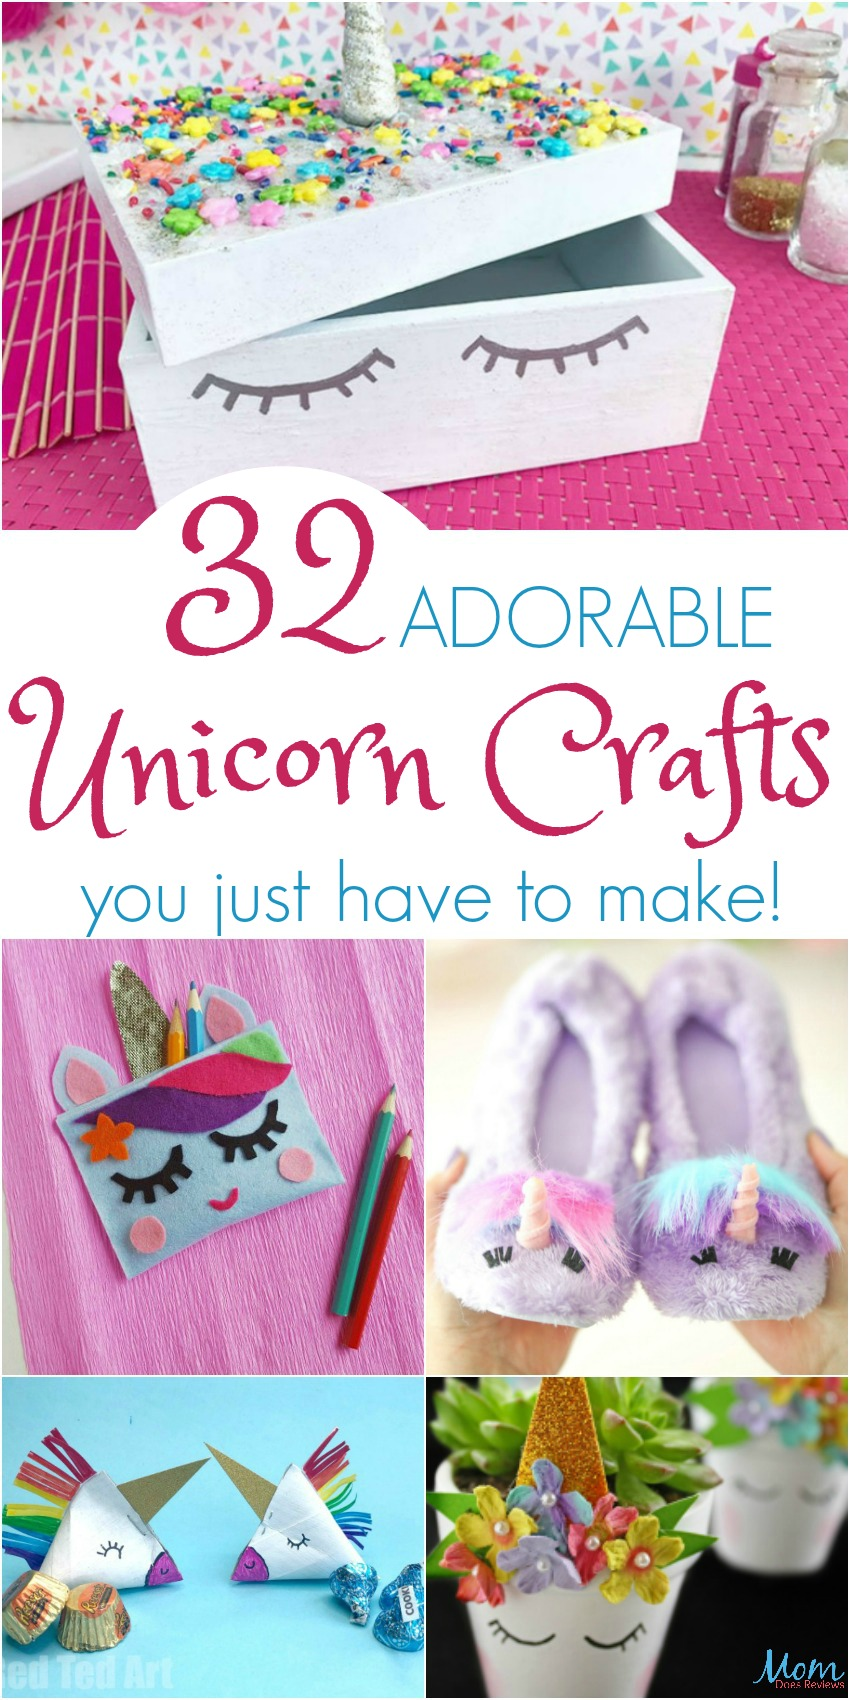 32 ADORABLE Unicorn Crafts you just have to make!